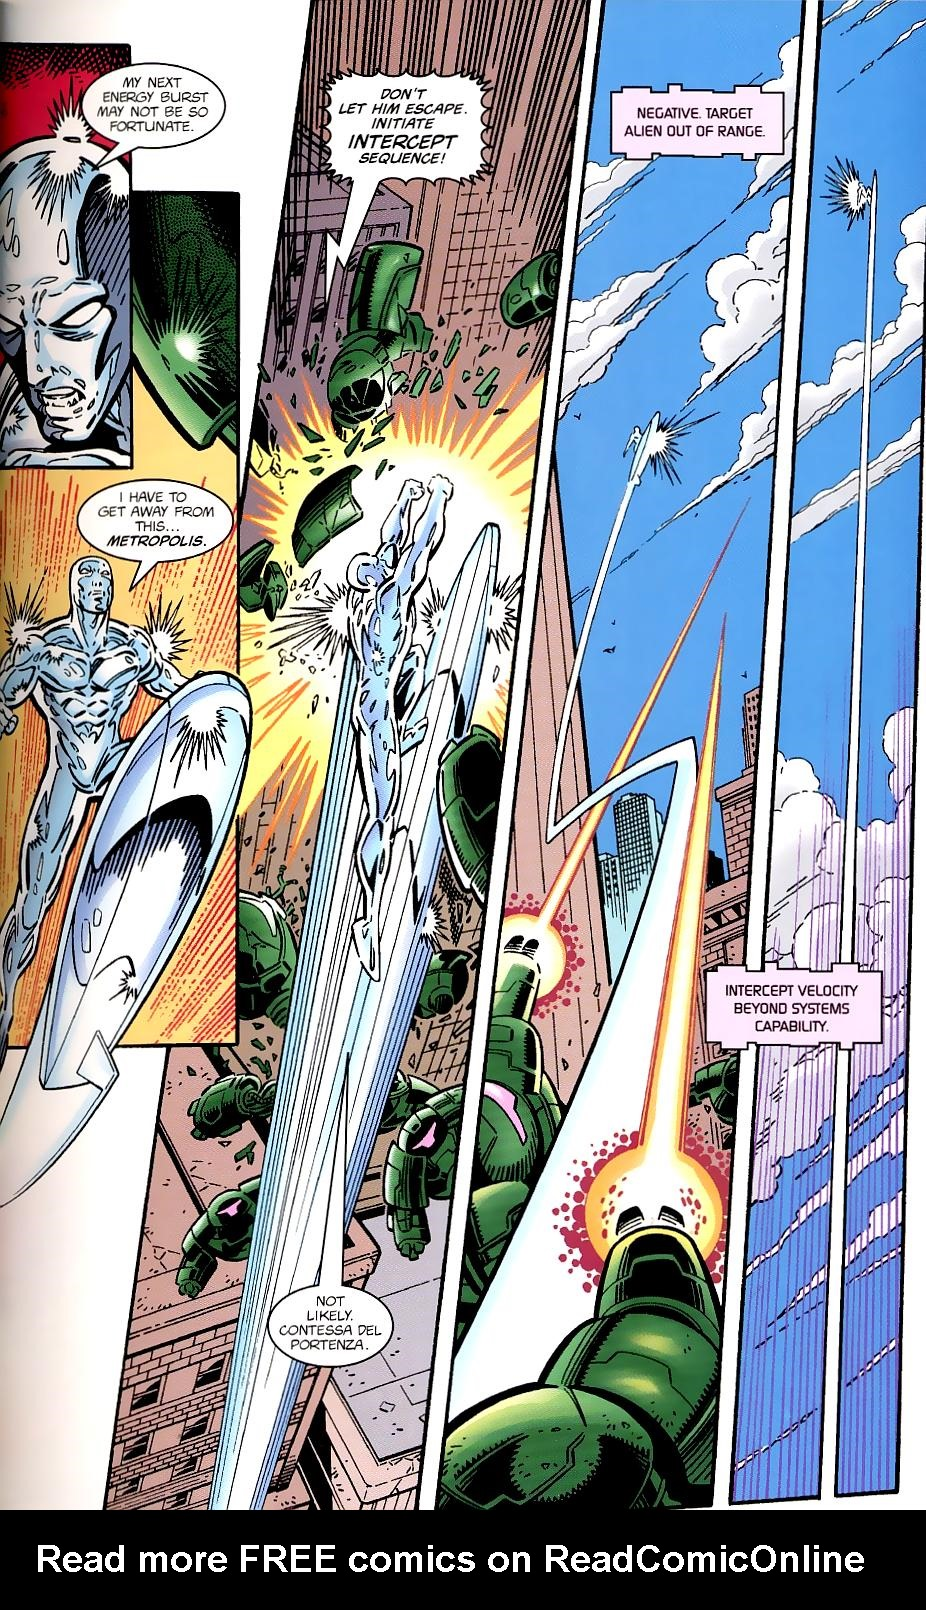 Read online Silver Surfer/Superman comic -  Issue # Full - 17